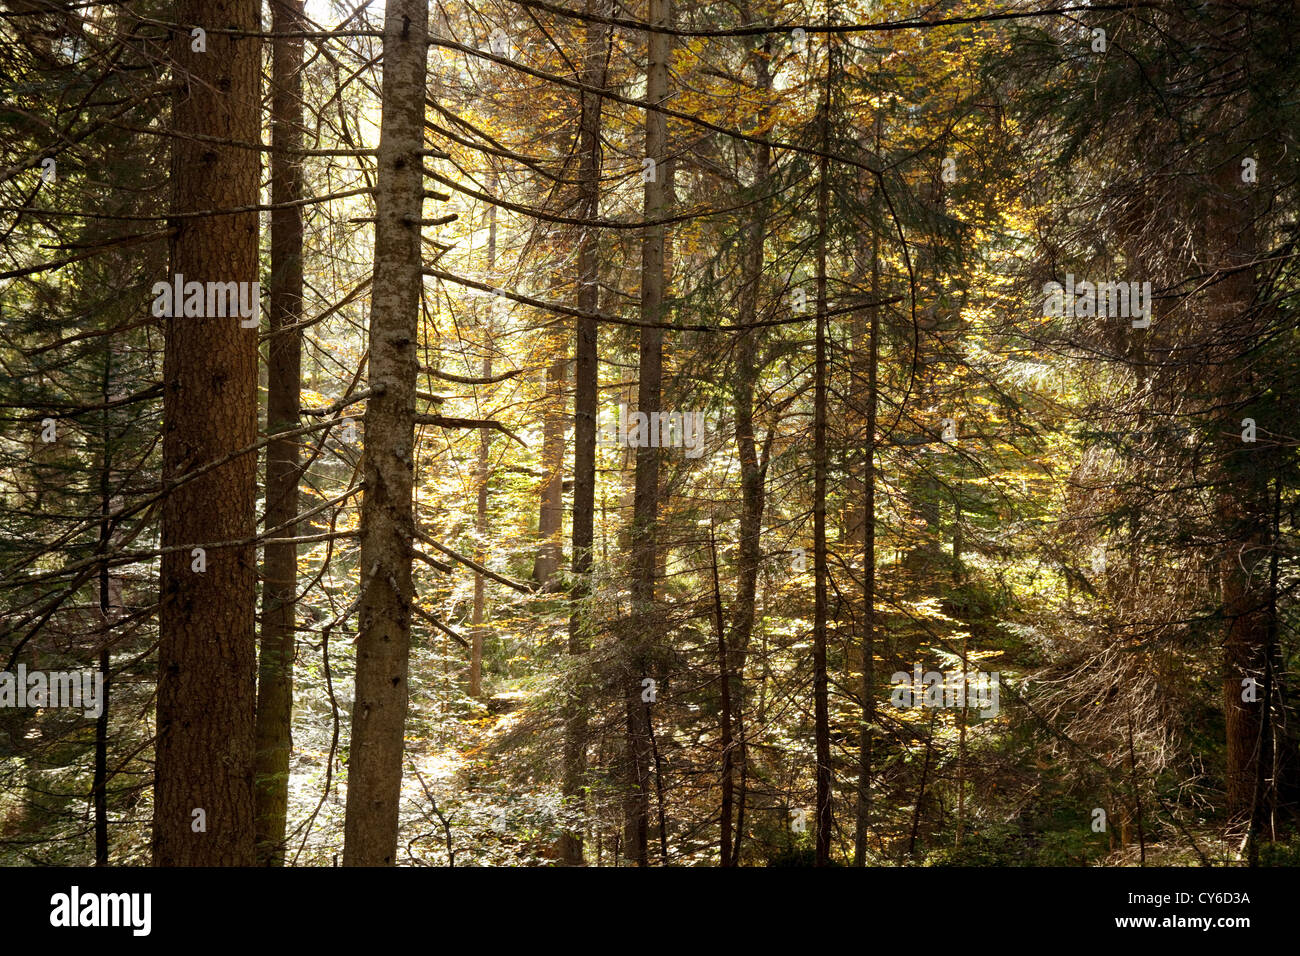 Sunlight filtering through coniferous pine trees in a forest , Switzerland Europe - Stock Image